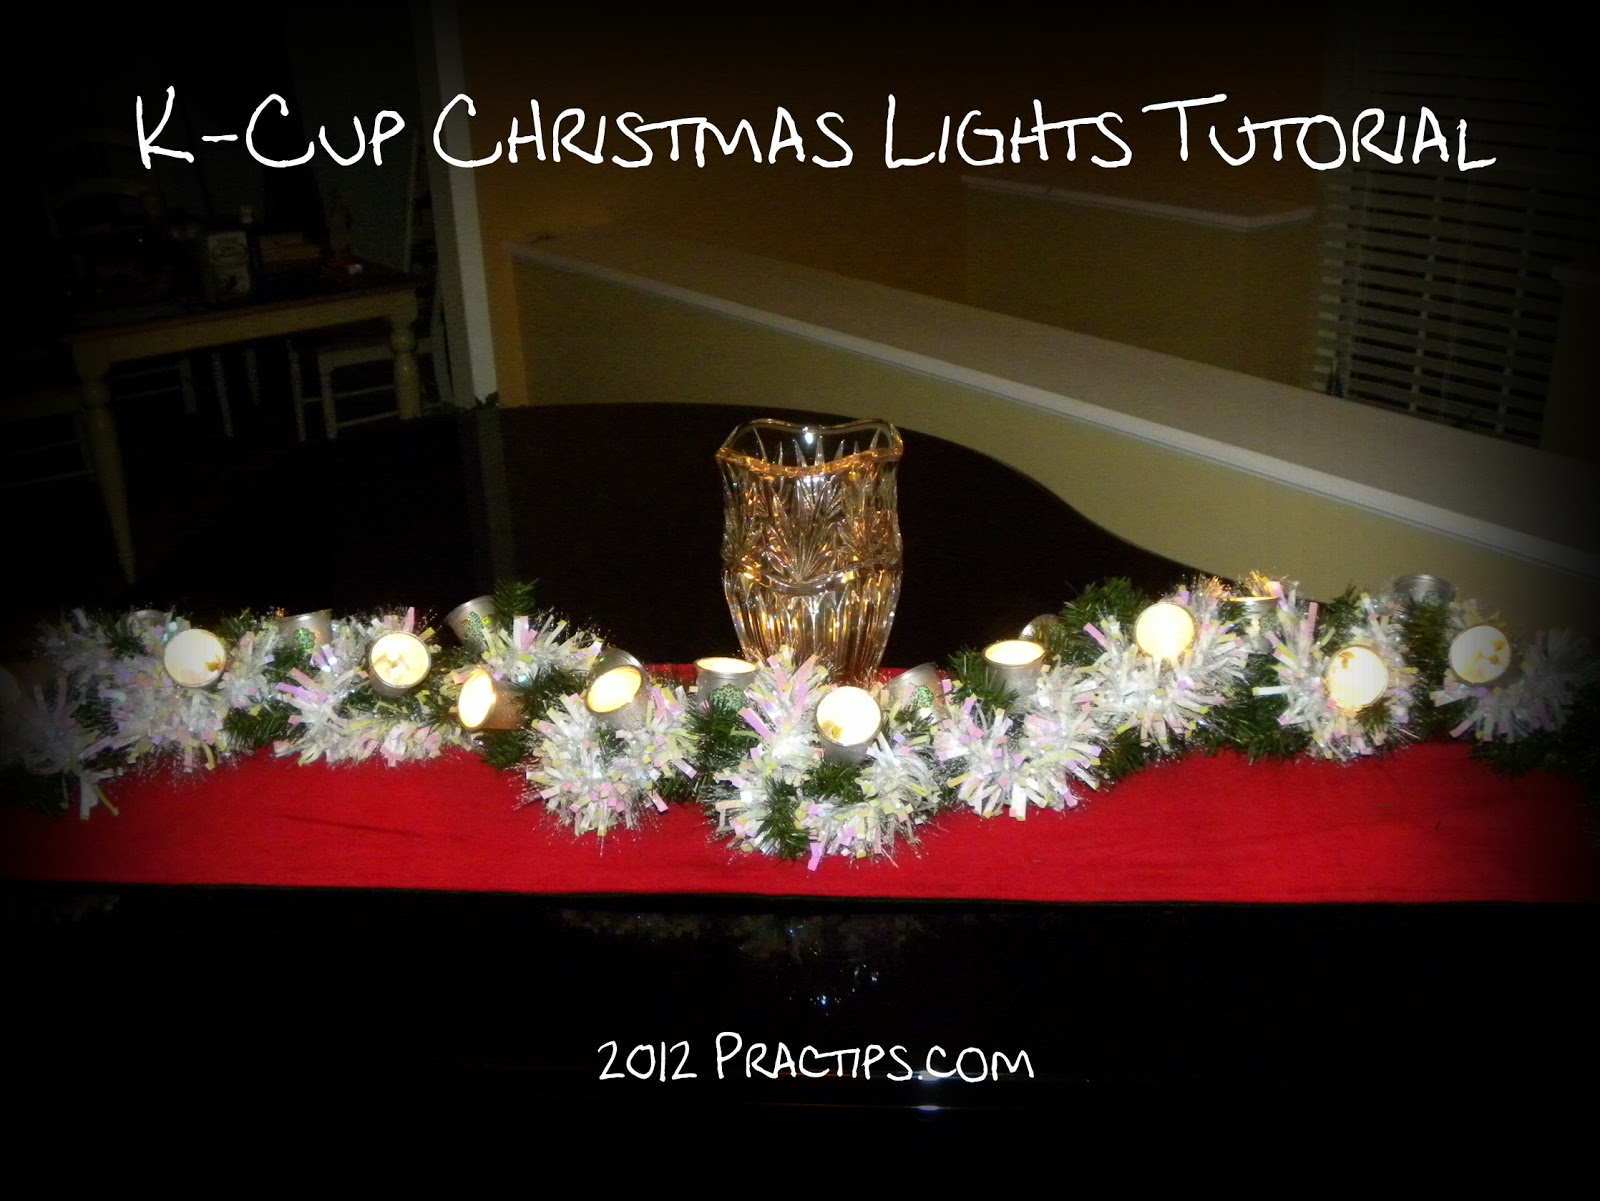 Practips: DIY: K-Cup Christmas Lights